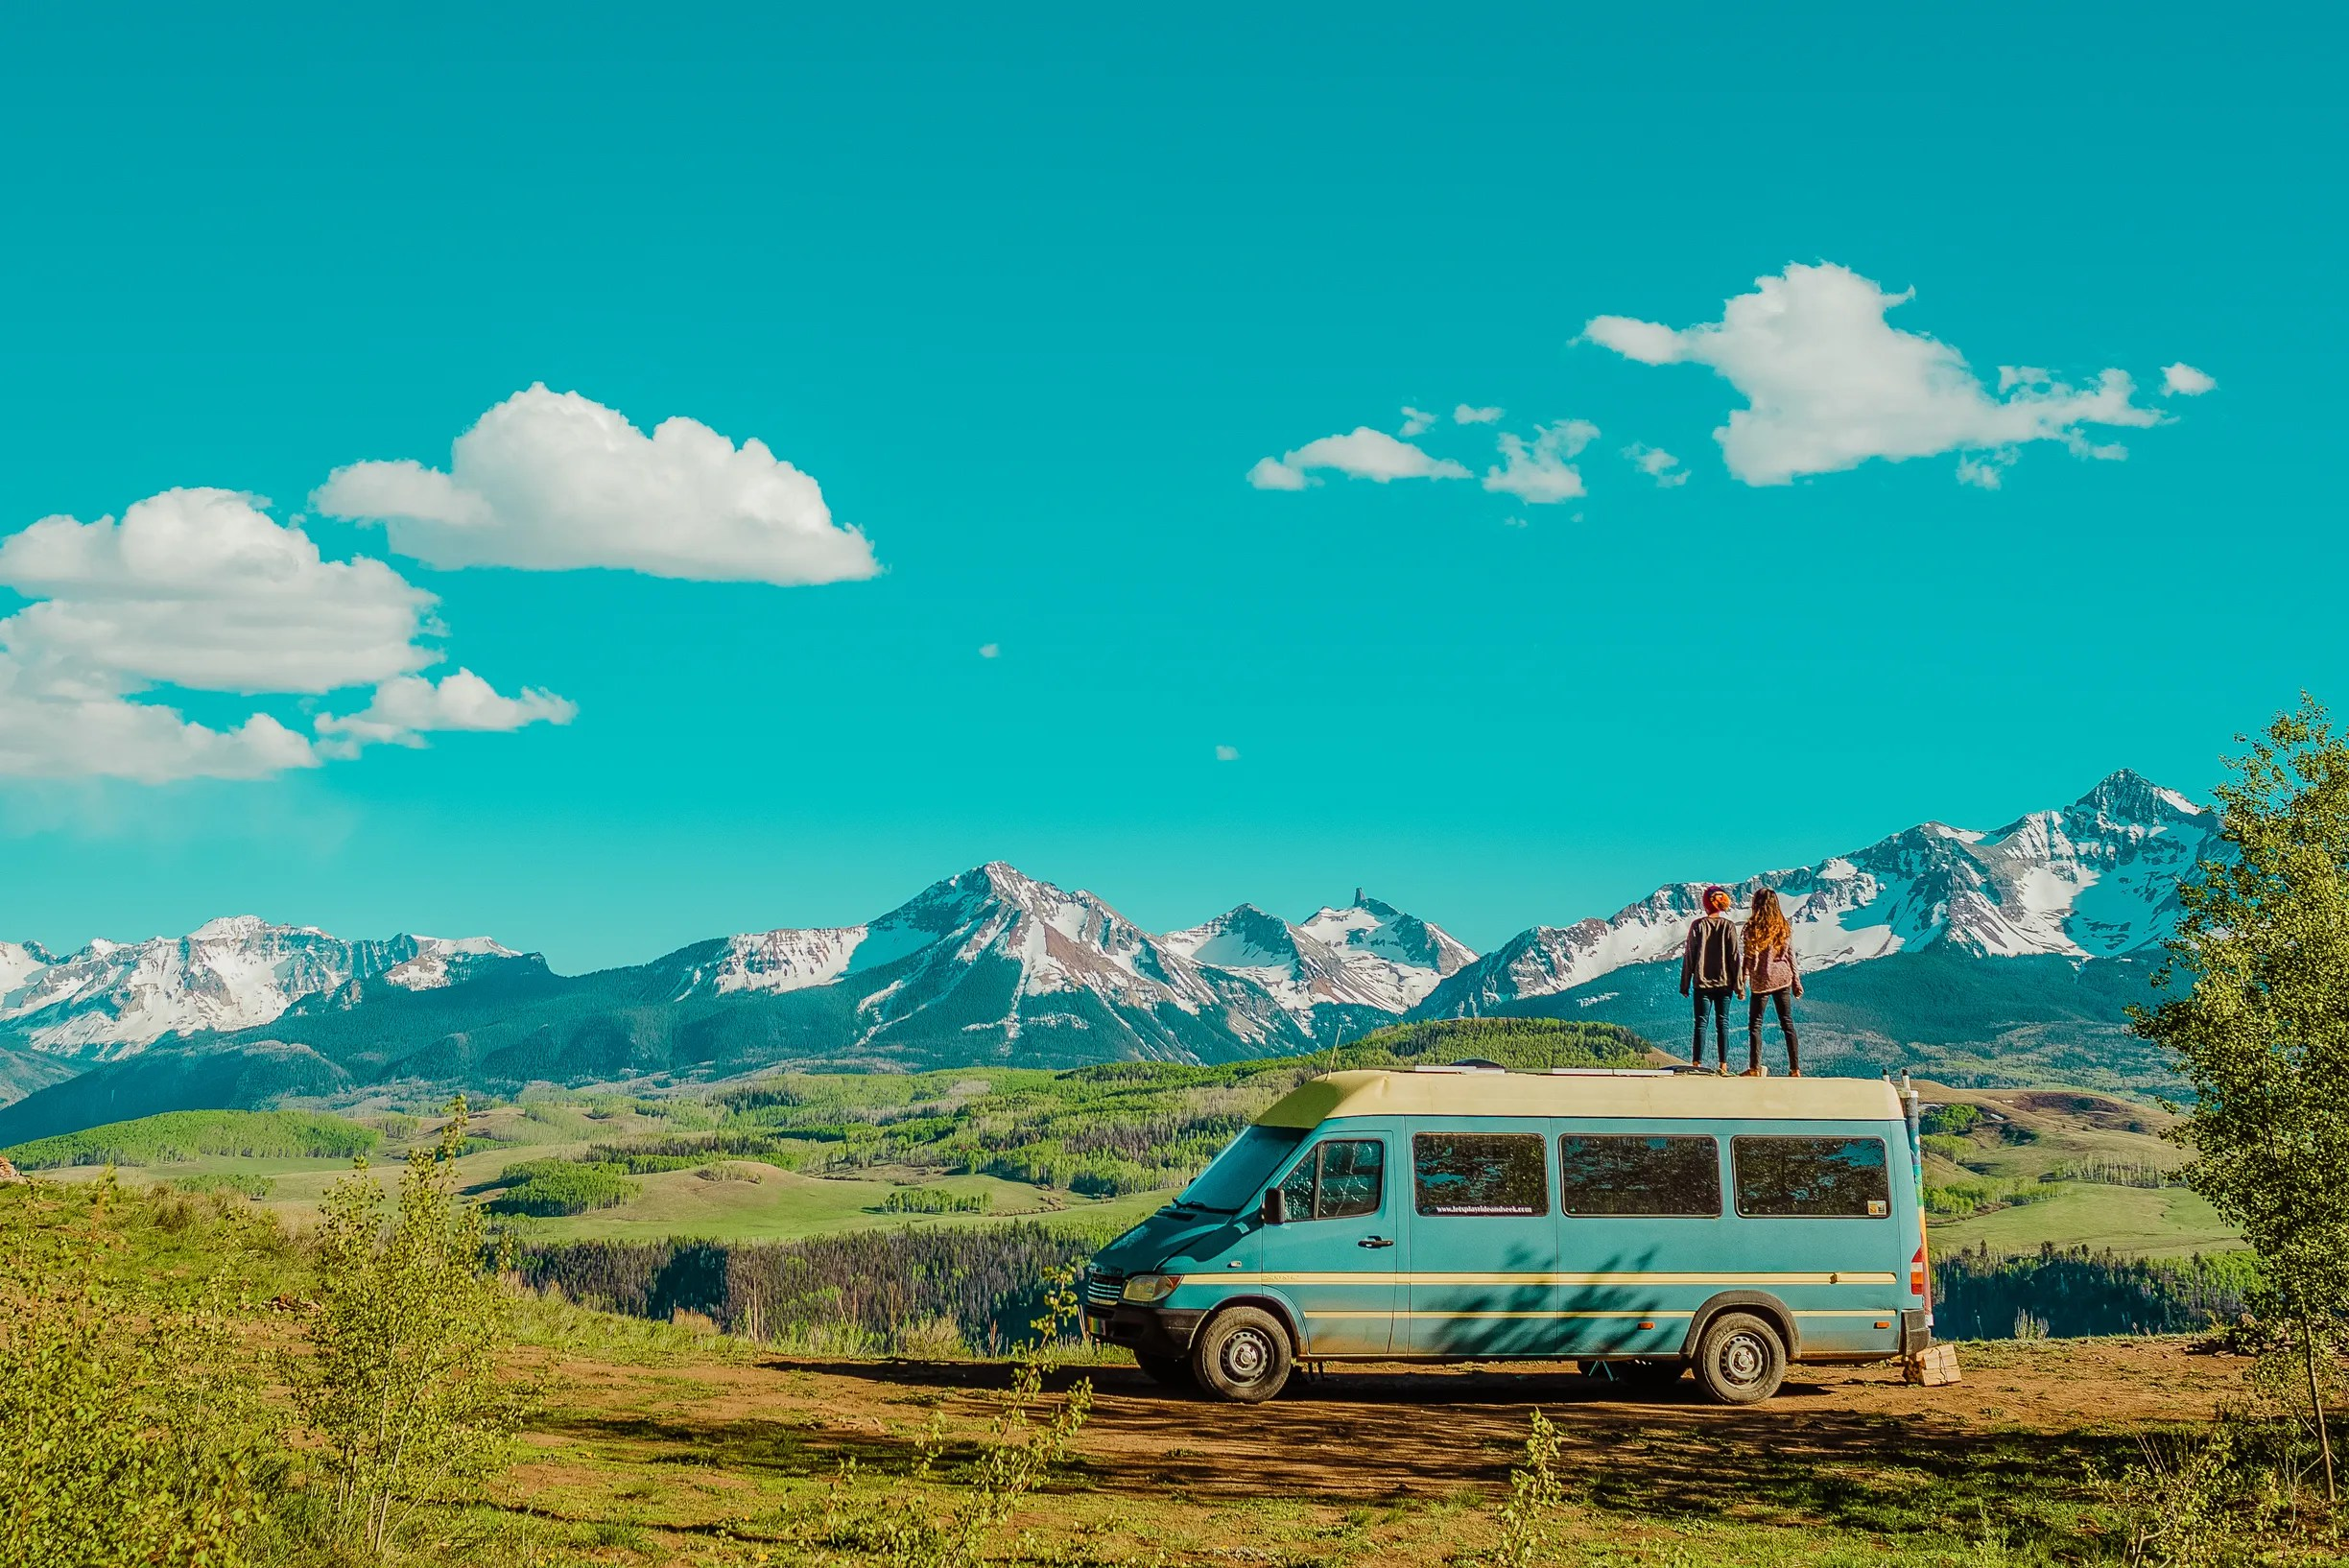 Married couple Natalie and Abigail Rodriguez travel the country living in a converted Mercedes-Benz Sprinter van and showcasing their adventures on Instagram @letsplayrideandseek.